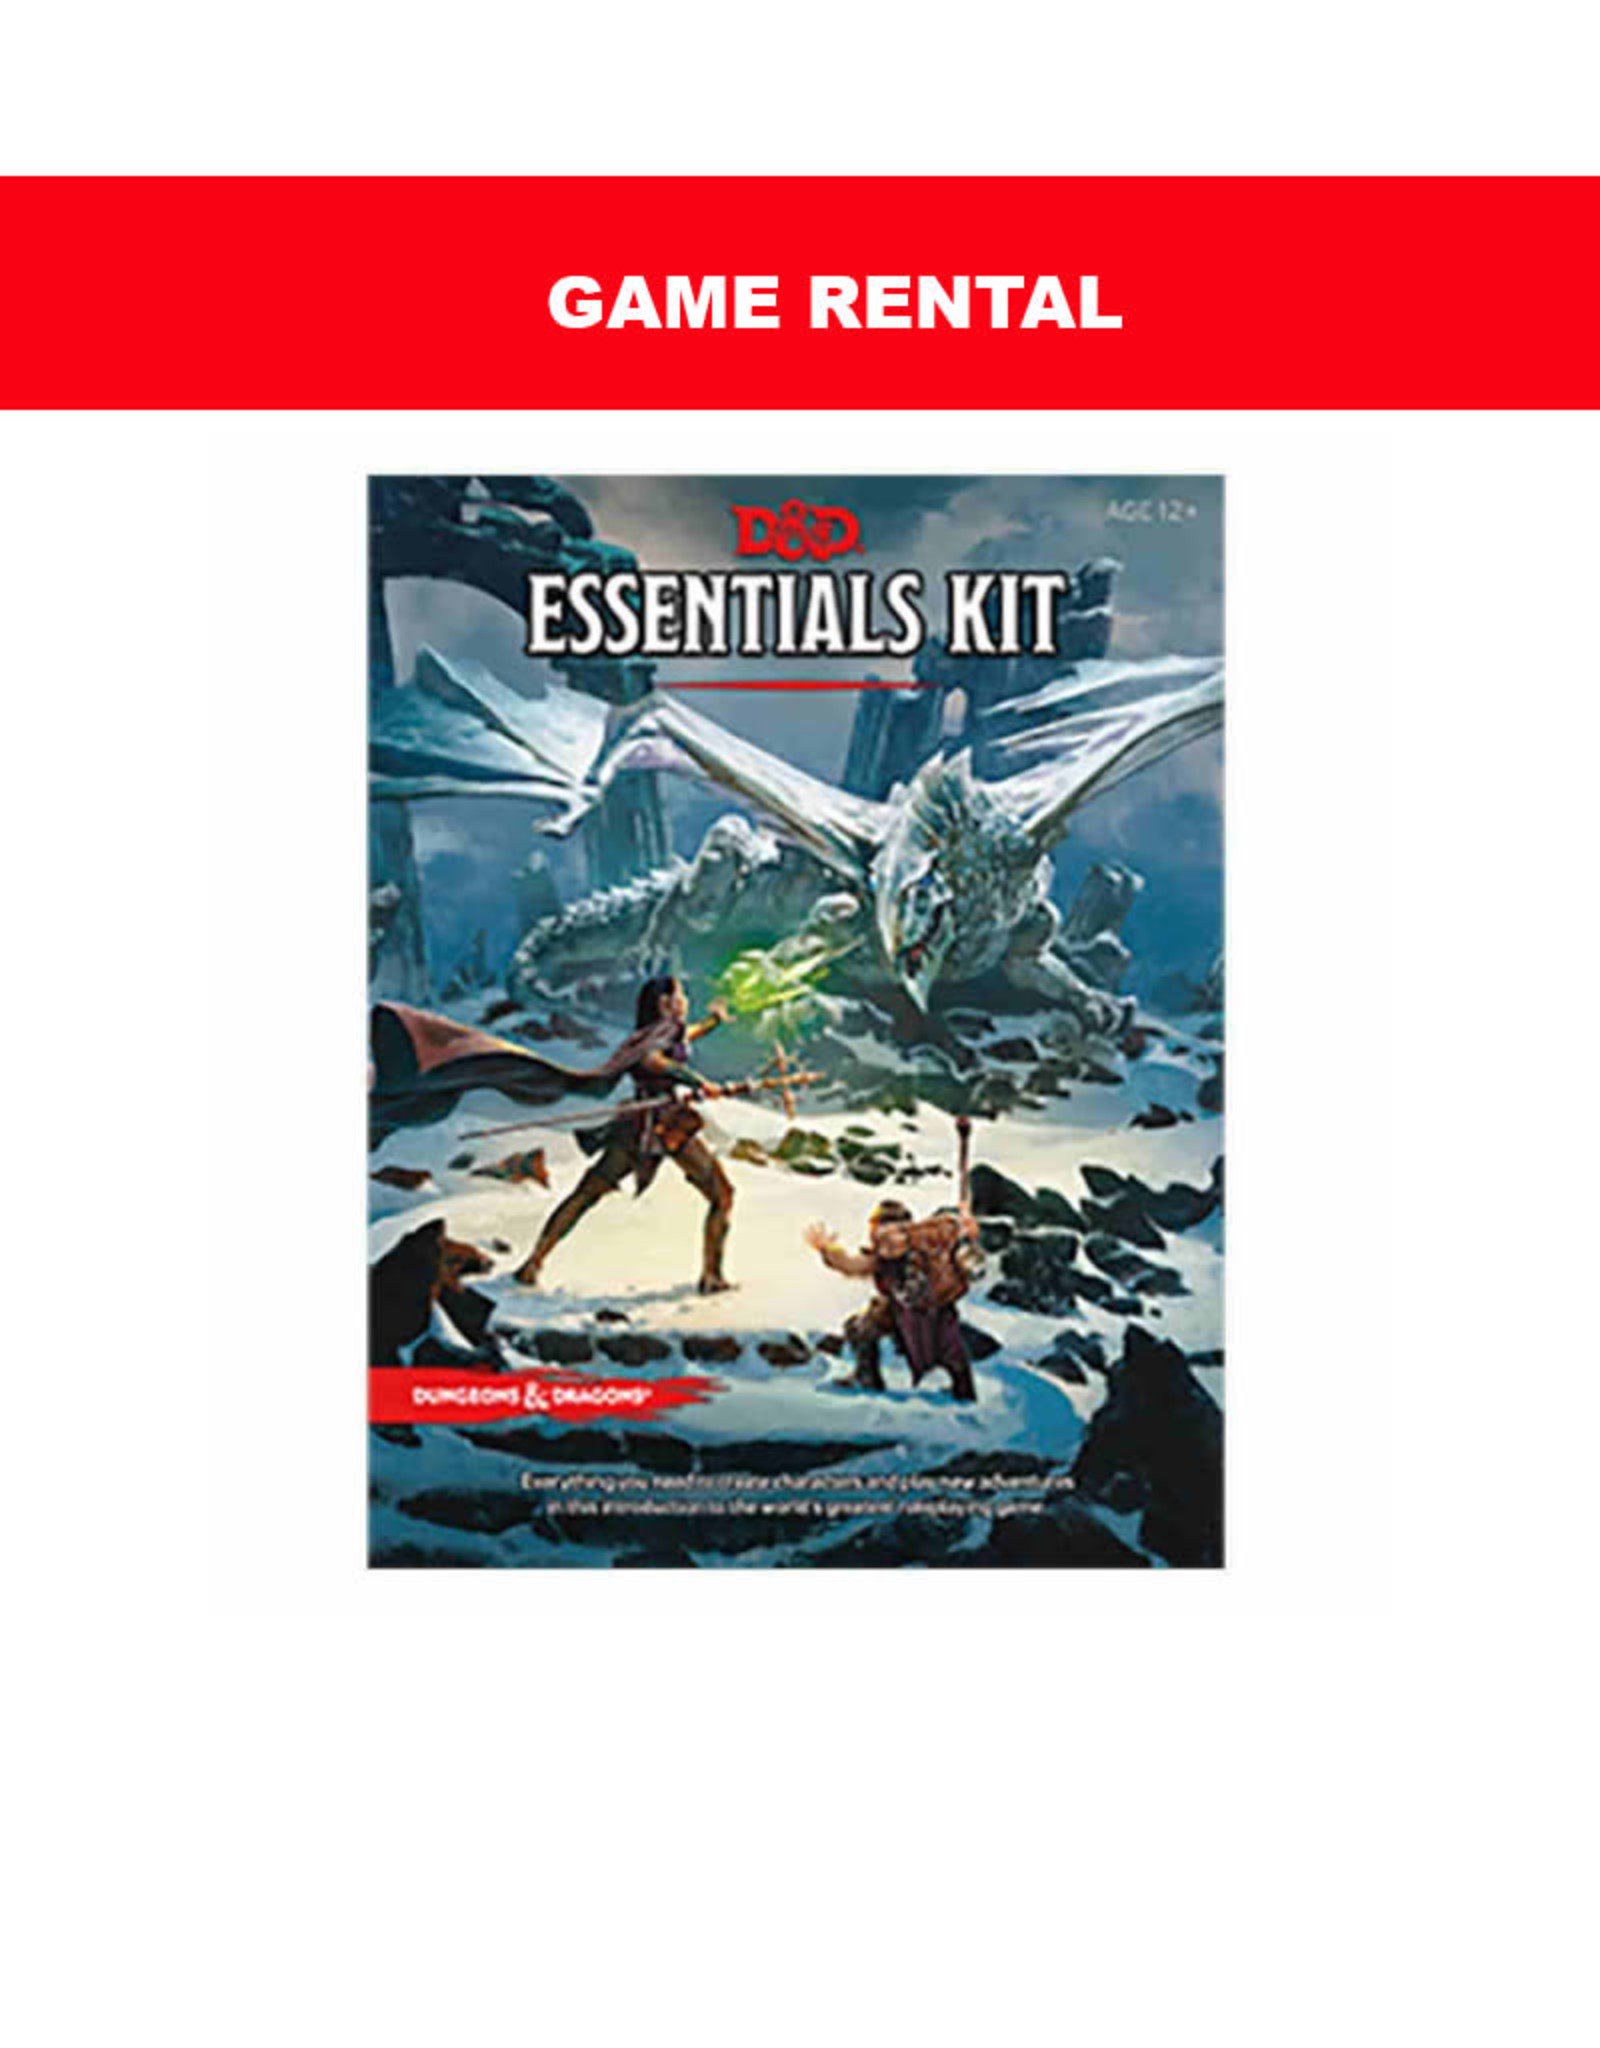 Wizards of the Coast (RENT) D&D RPG Essentials Kit per day. Love it! Buy it!